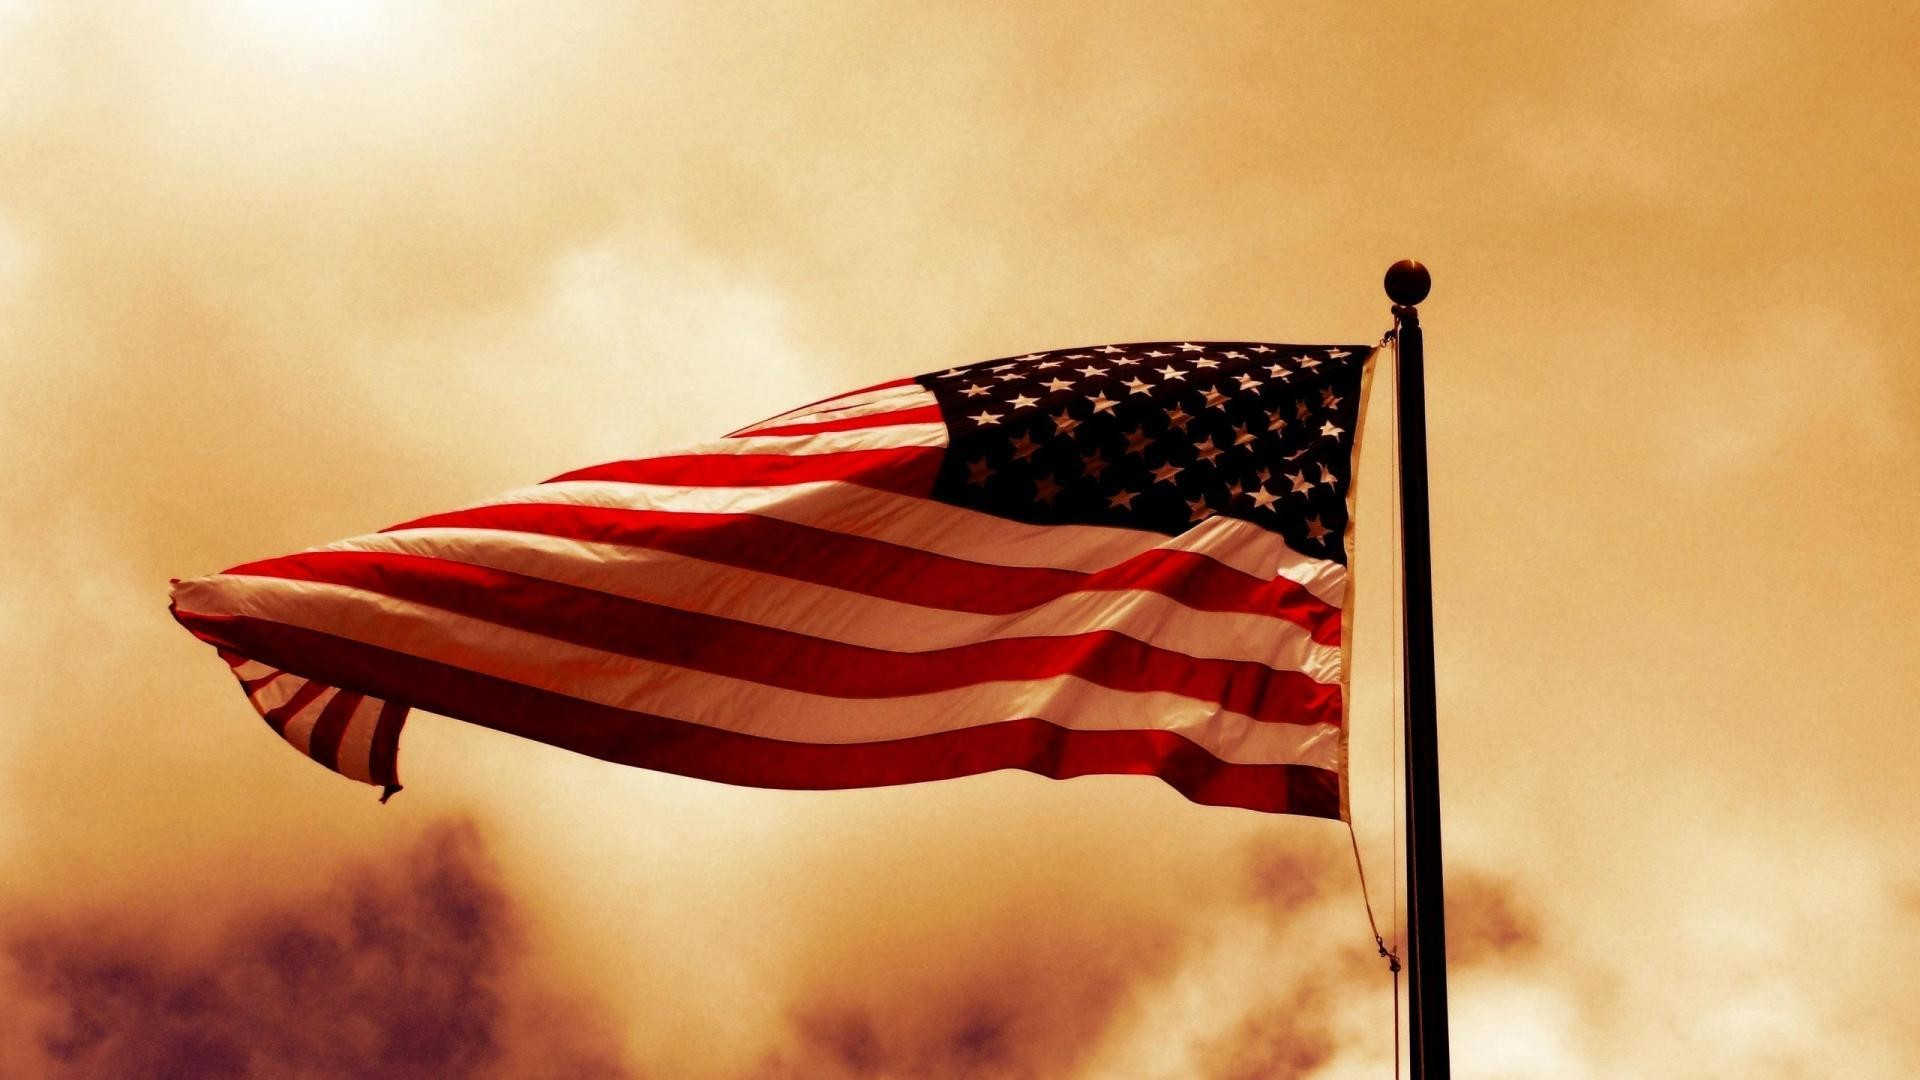 1920x1080 USA American Flag Background HD Wallpapers Image 41099 Label .